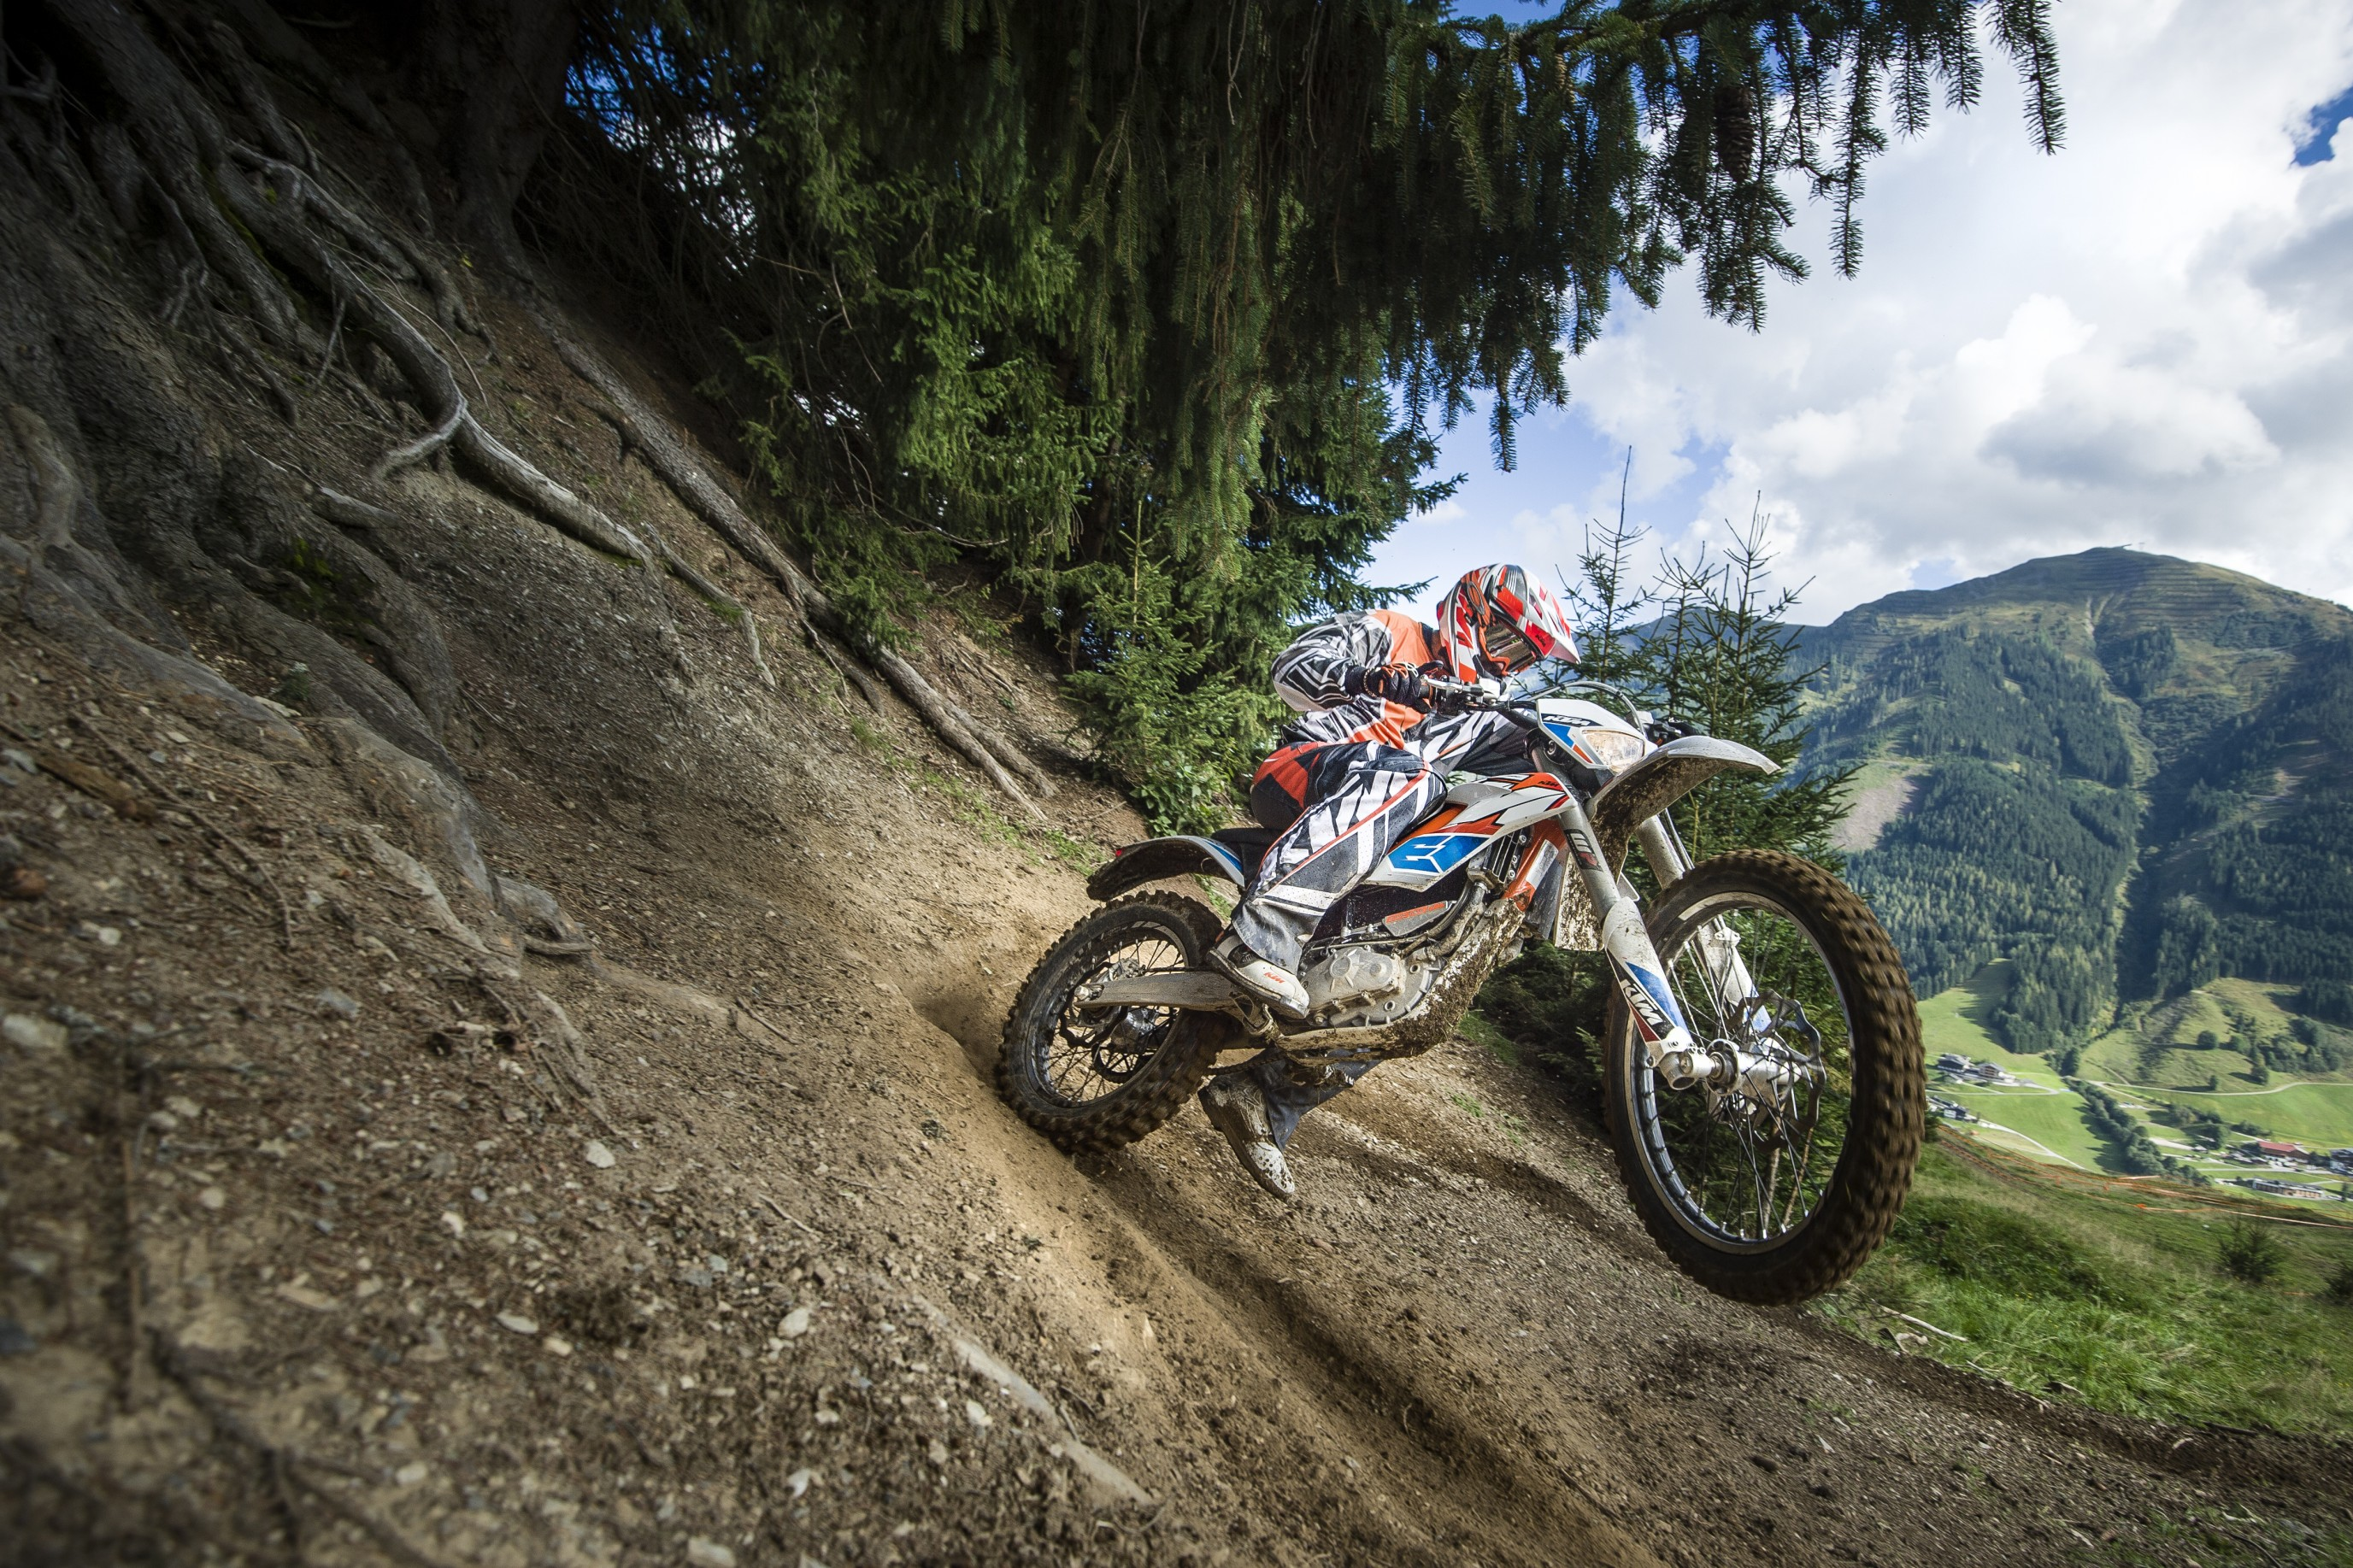 Ride KTM's Freeride-E at the UK's first 'E-park'